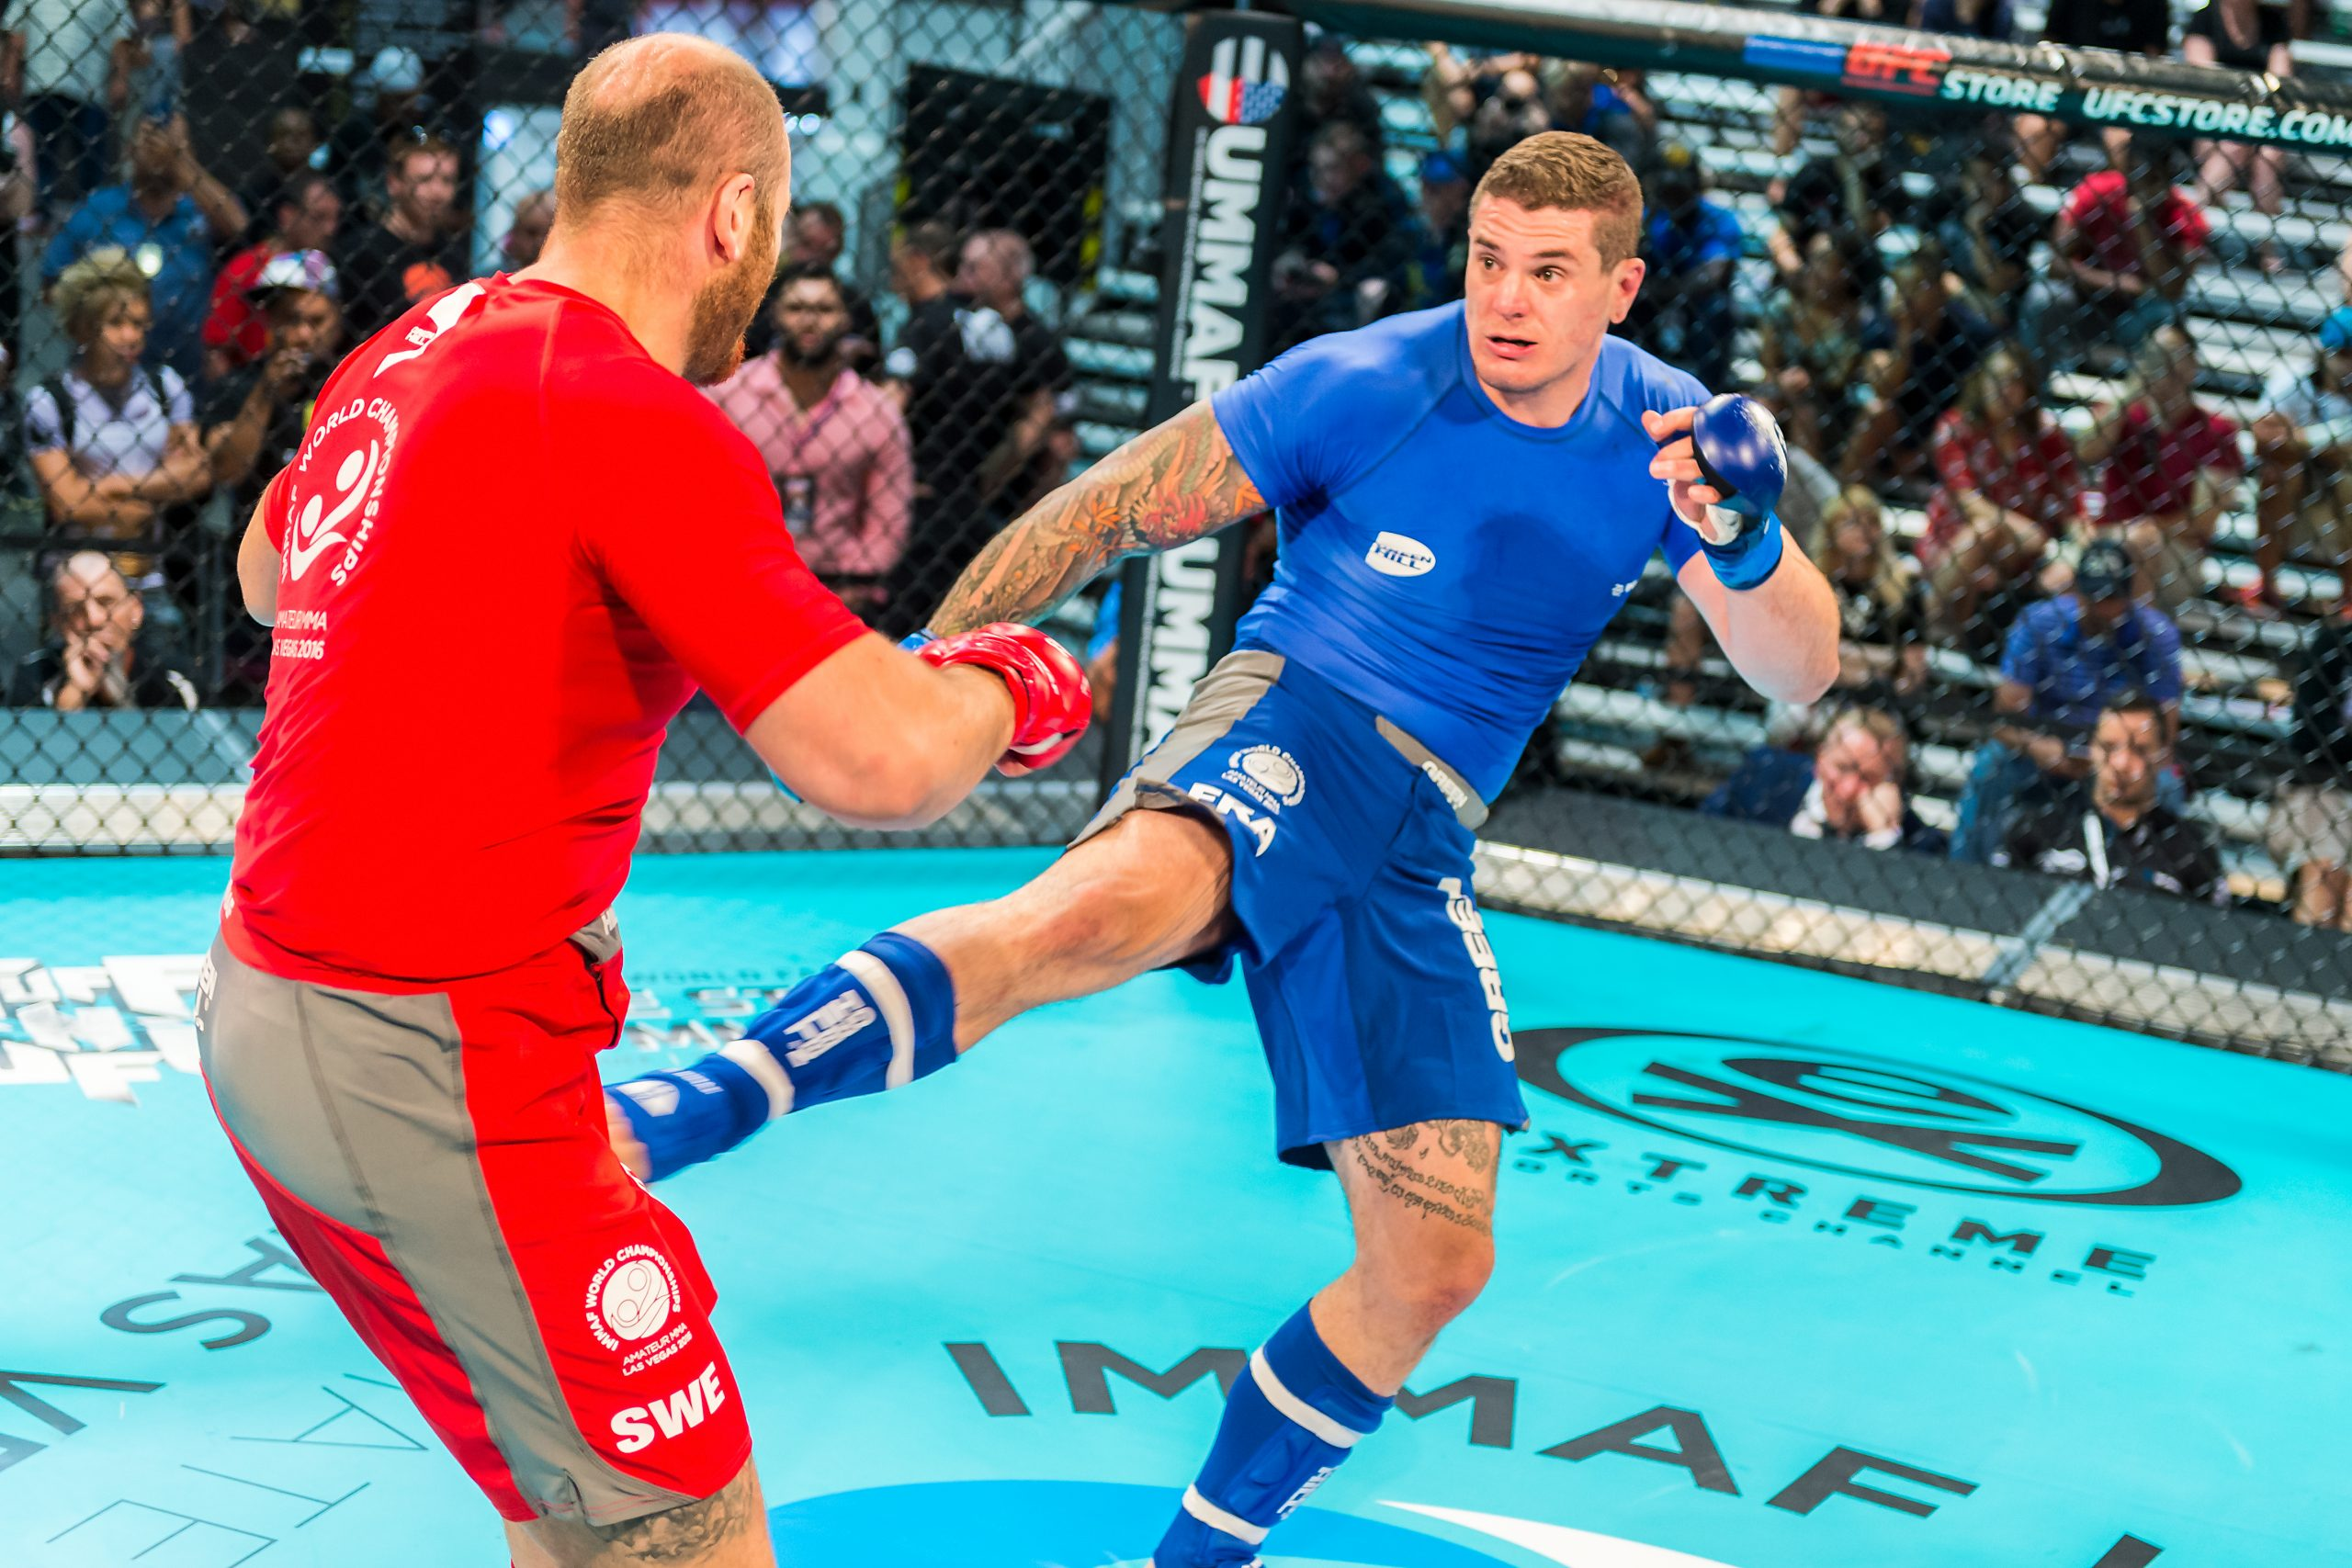 GUICHARD HEADS FRENCH PROSPECTS AGAINST BACKDROP OF POLITICAL BATTLE OVER MMA IN FRANCE